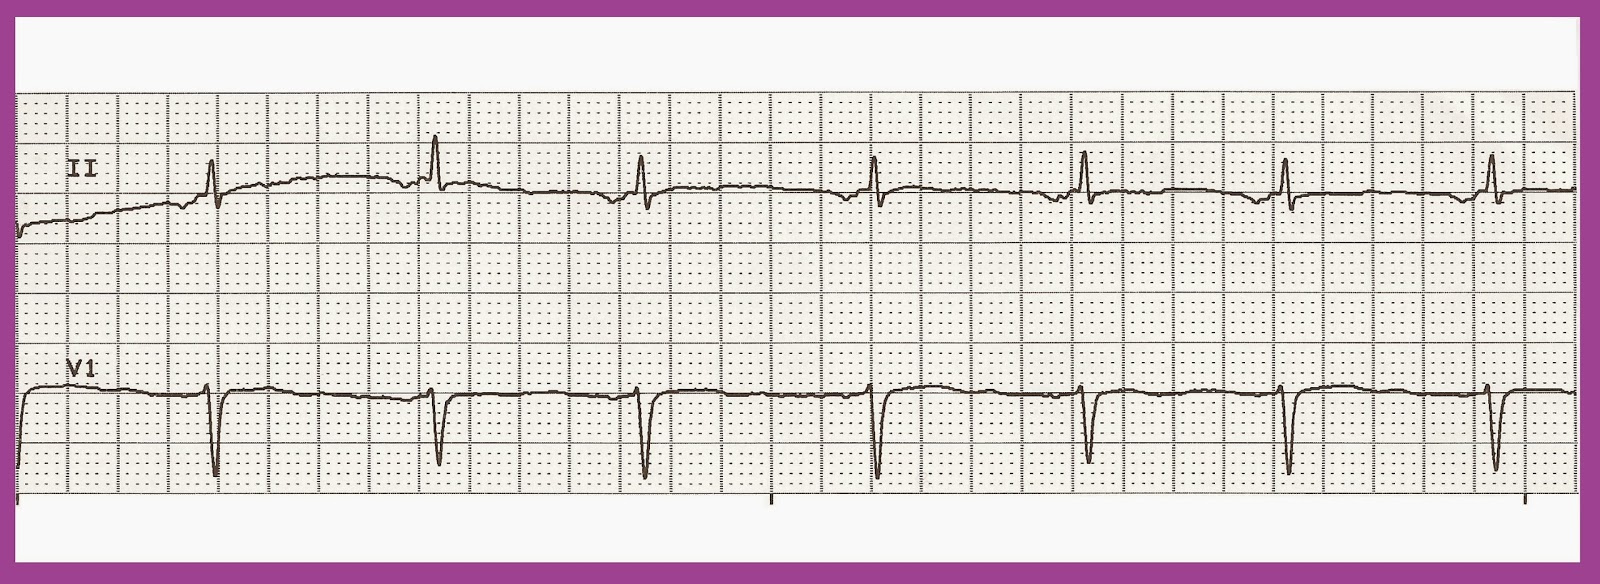 Accelerated junctional rhythmAccelerated Junctional Rhythm